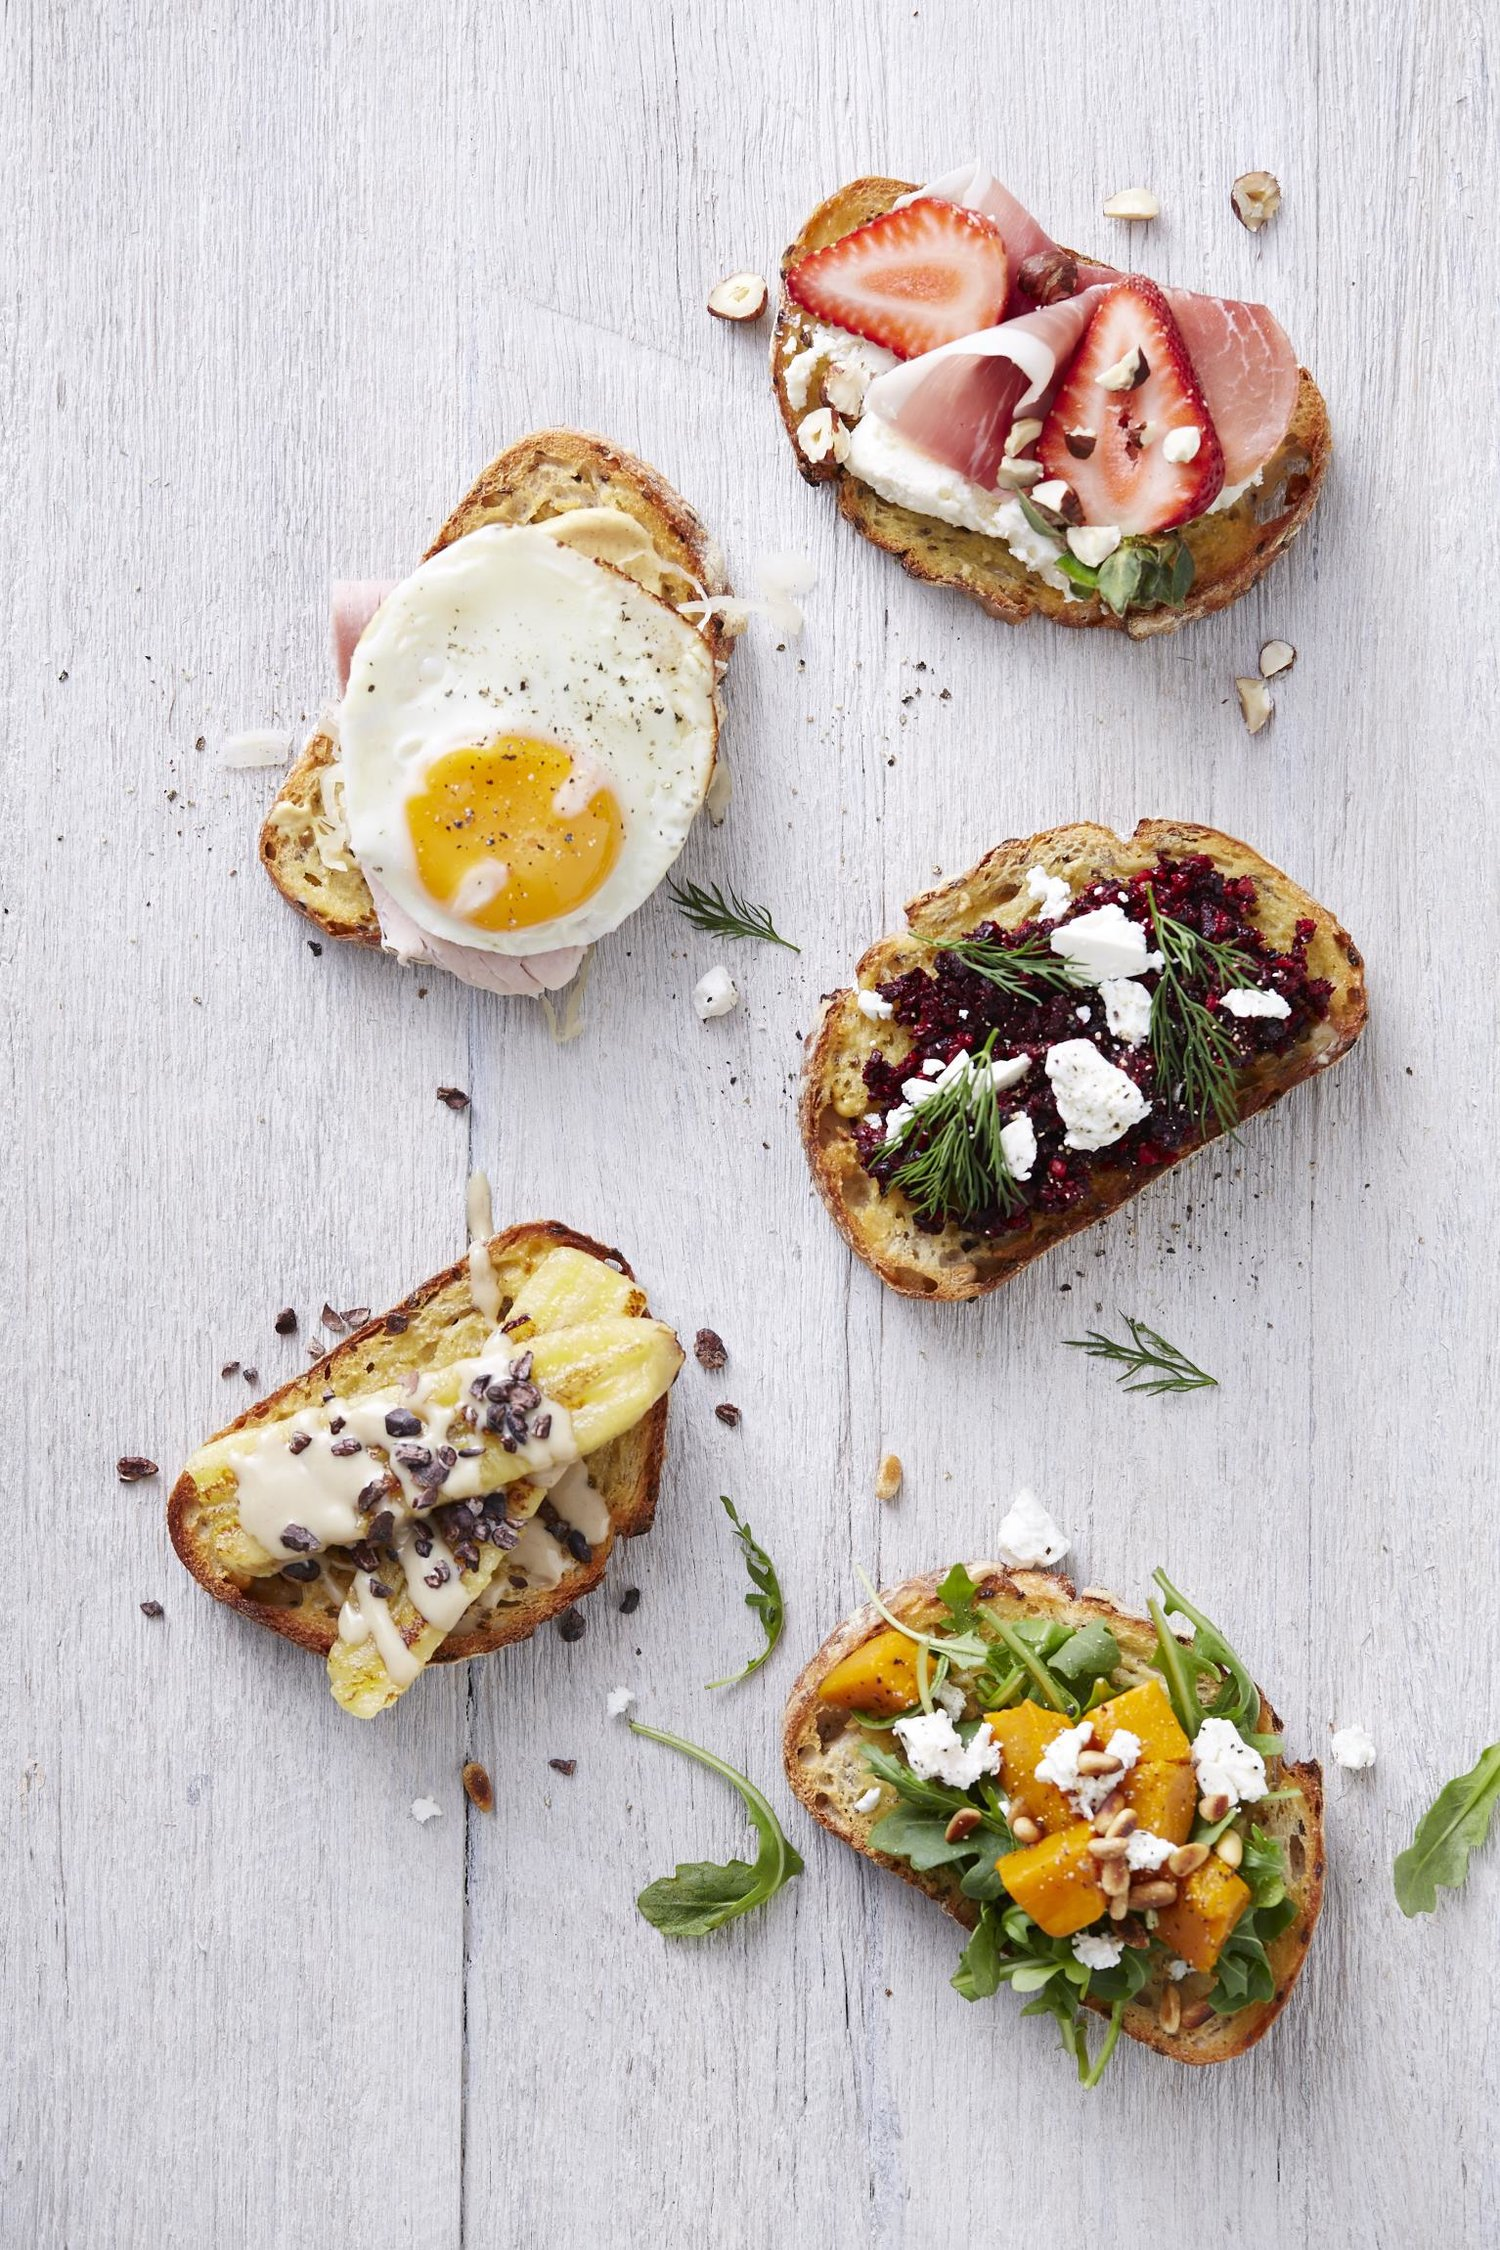 Lush Toasties. I Quit Sugar. Healthy Breakfast Cookbook. Photographer: Ella Martin. Stylist: Gemma Lush.